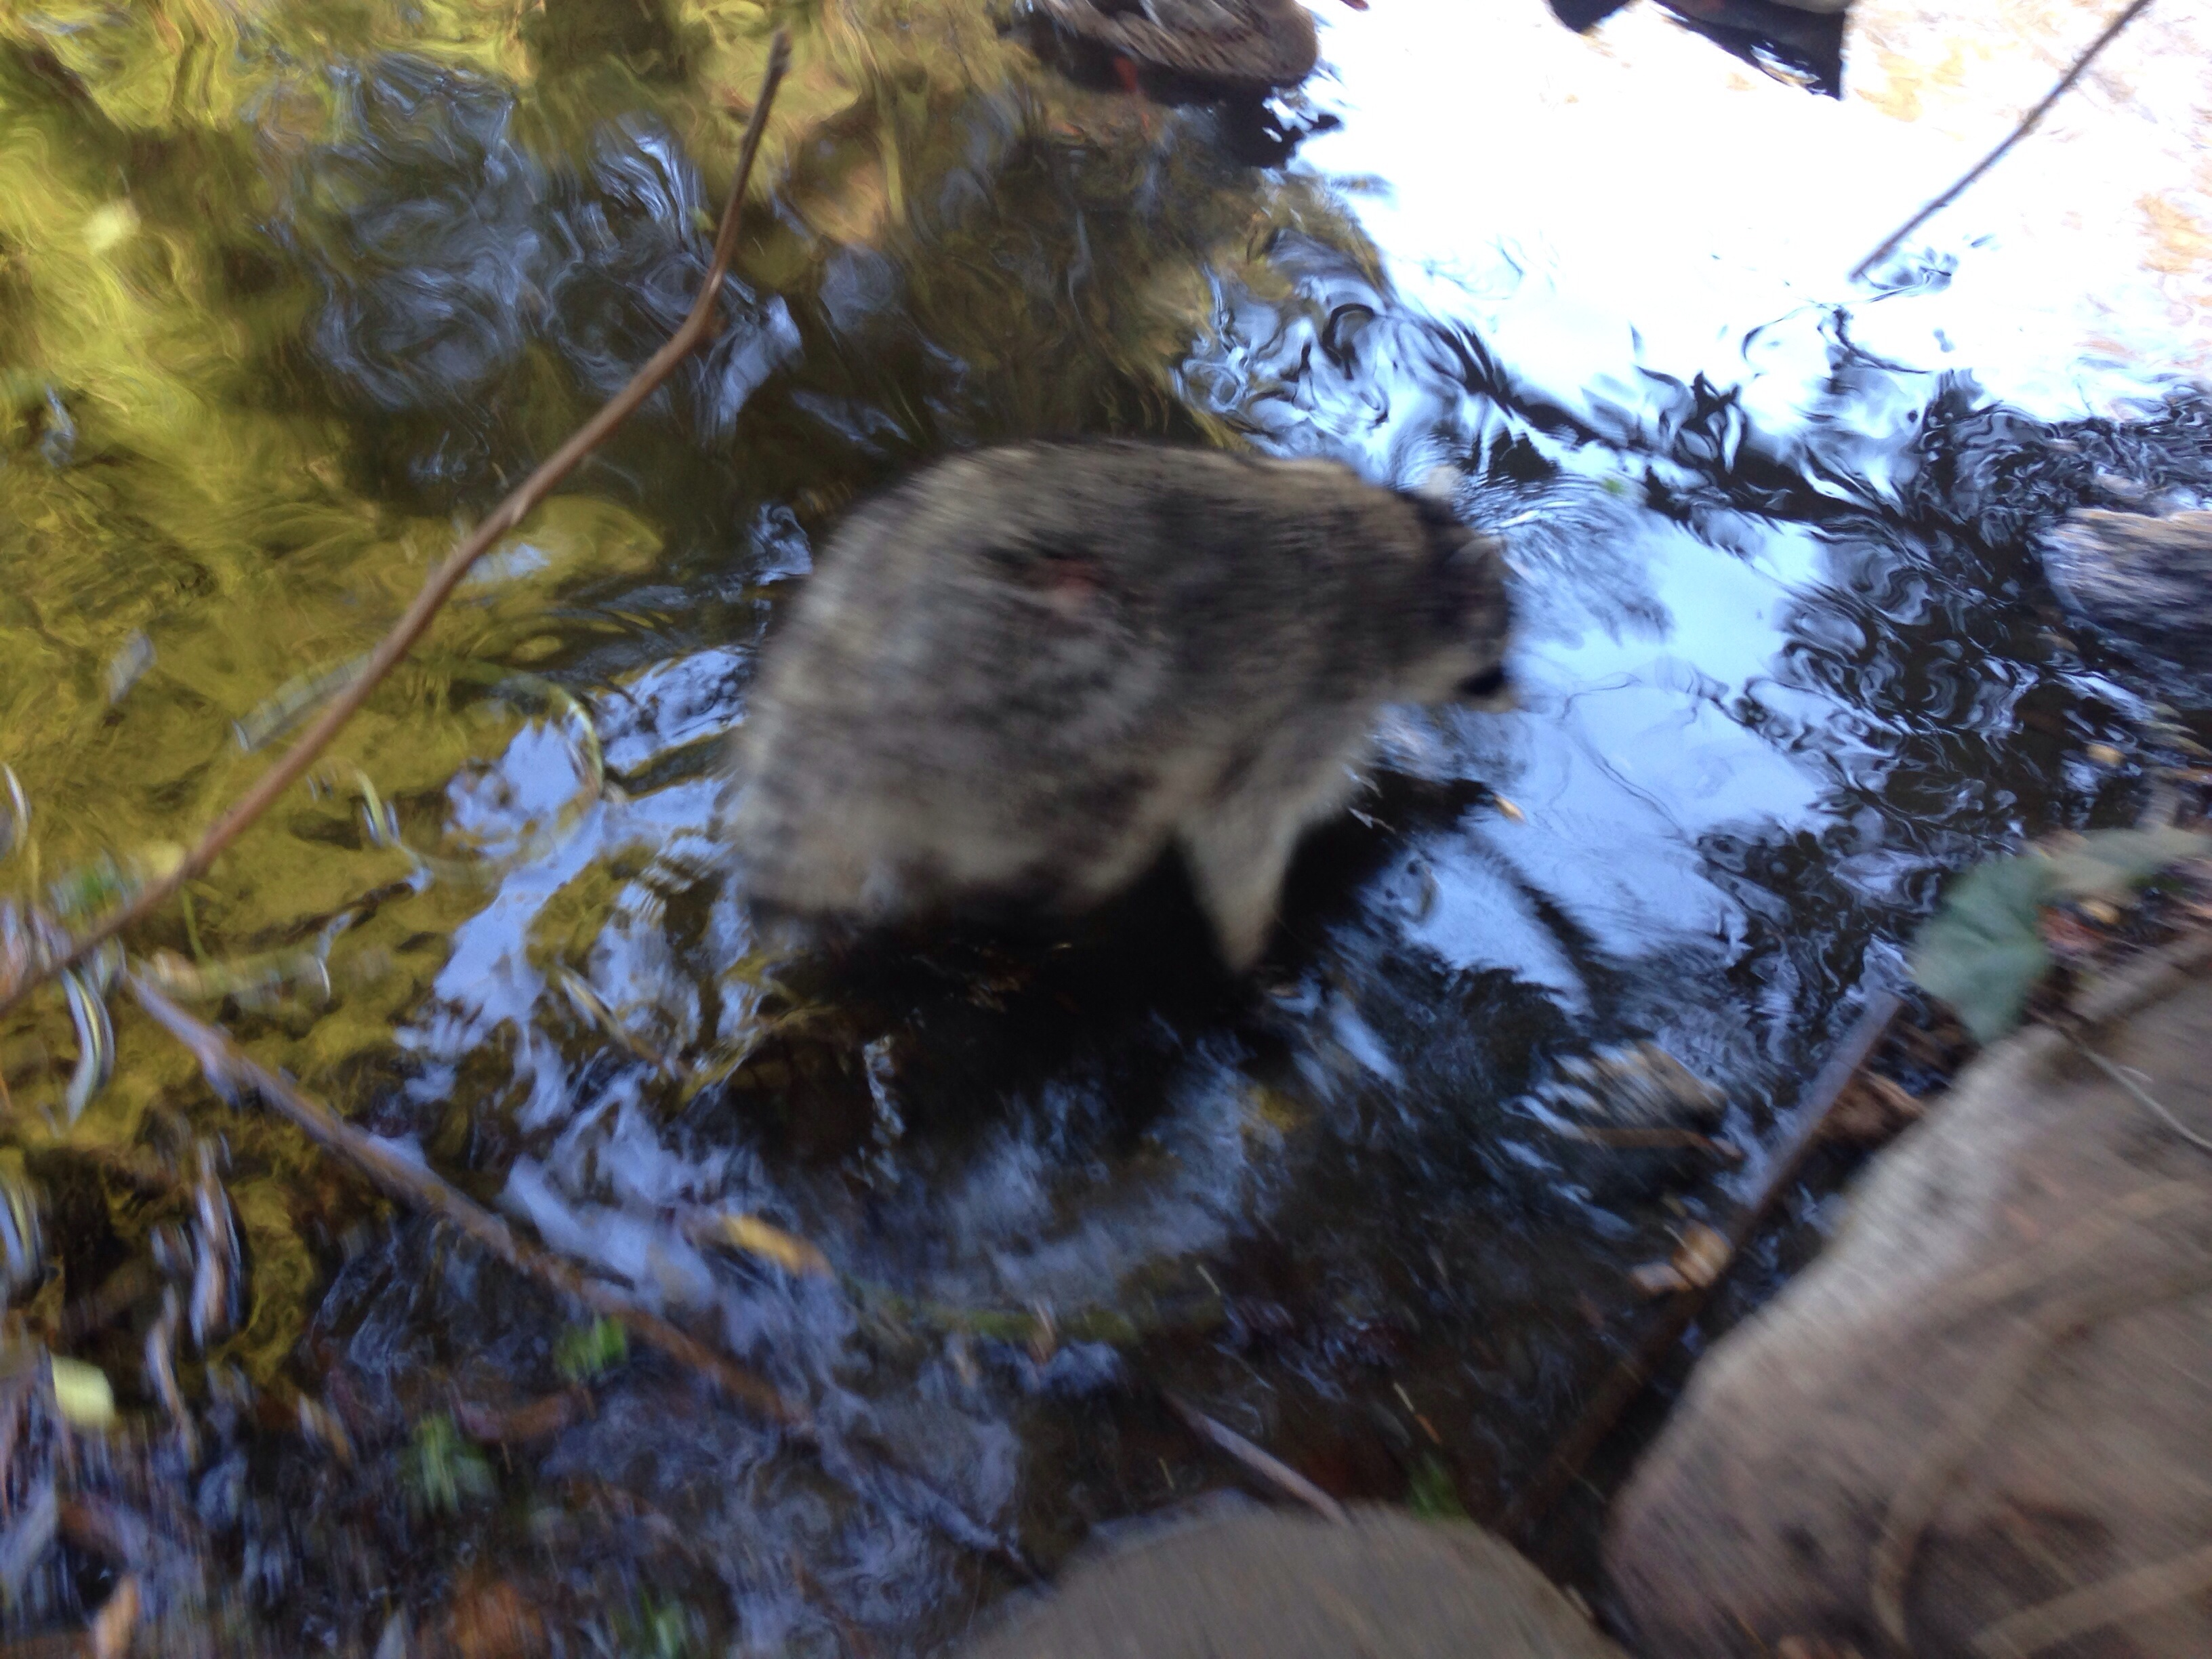 A die-ing Raccoon in Golden Gate Park | Photography ... Raccoon With Mange